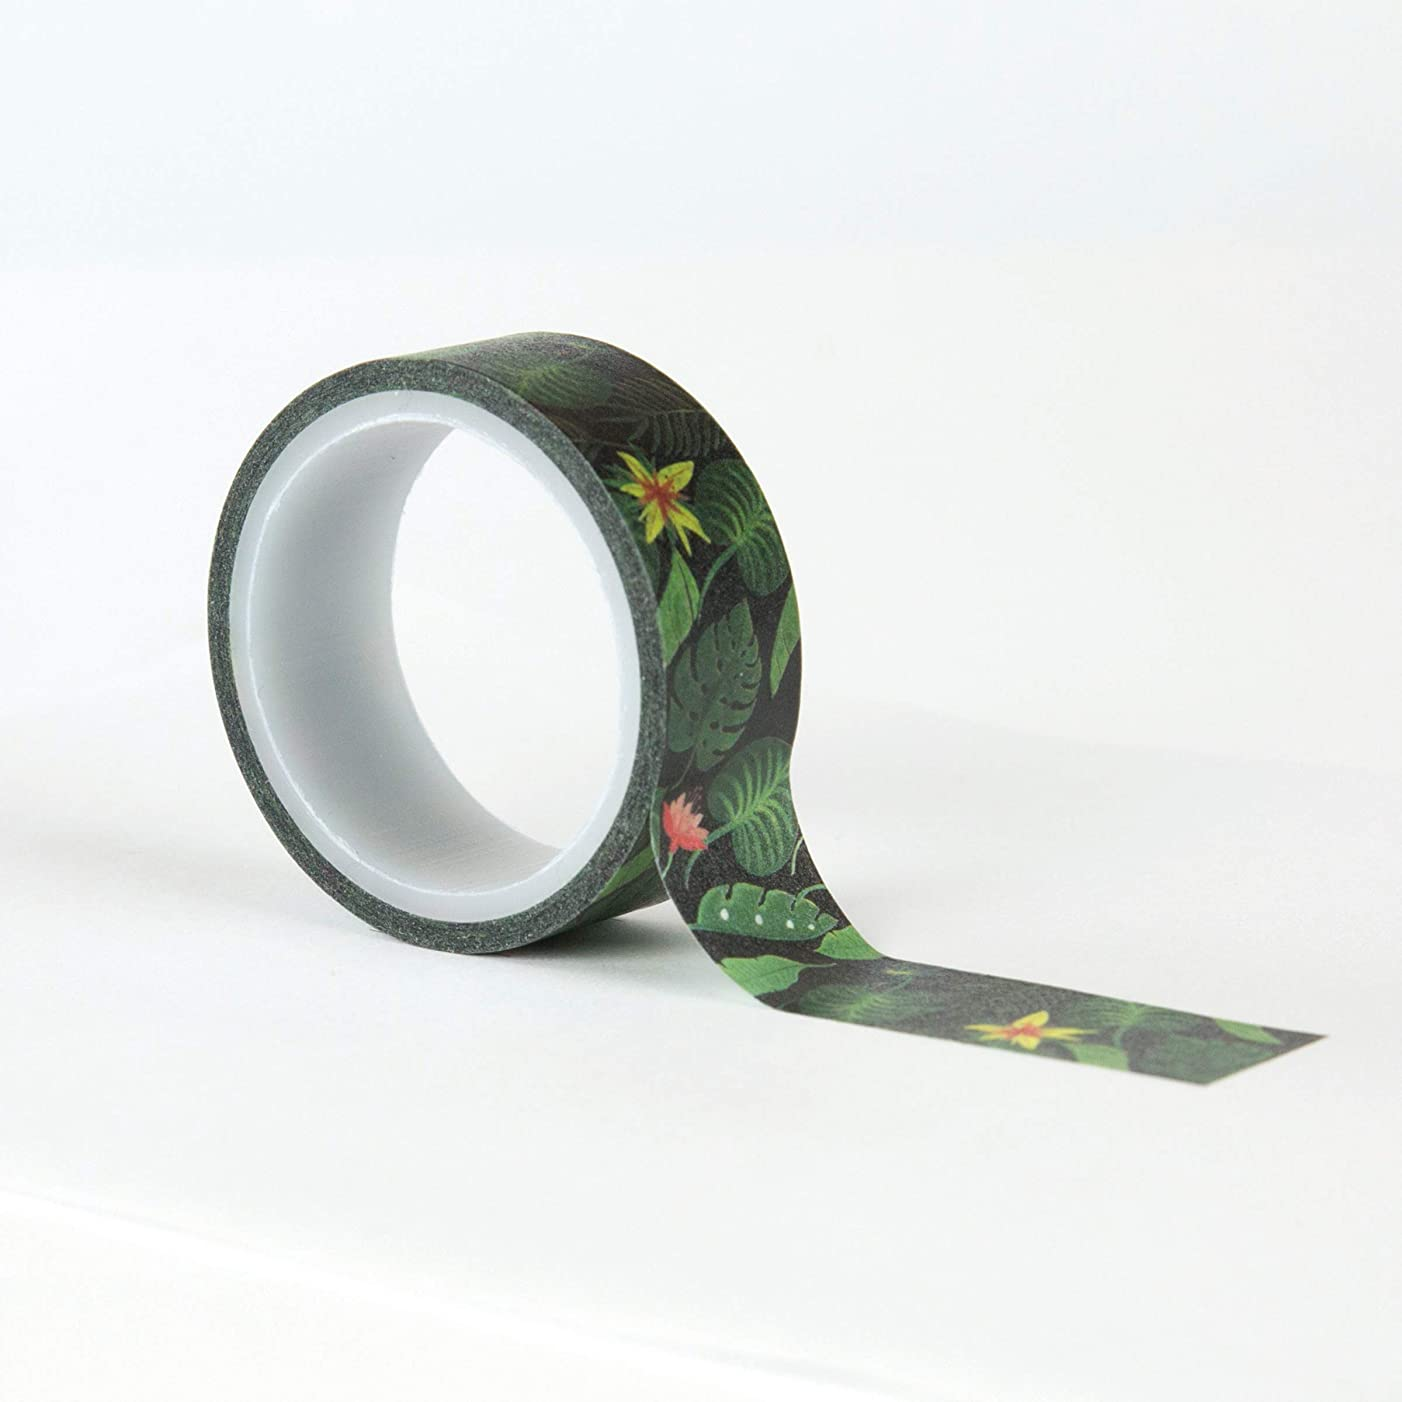 Echo Park Paper Company ZOO167027 Decorative Jungle Palms washi Tape, Green, Navy, Blue, Yellow, red, Pink